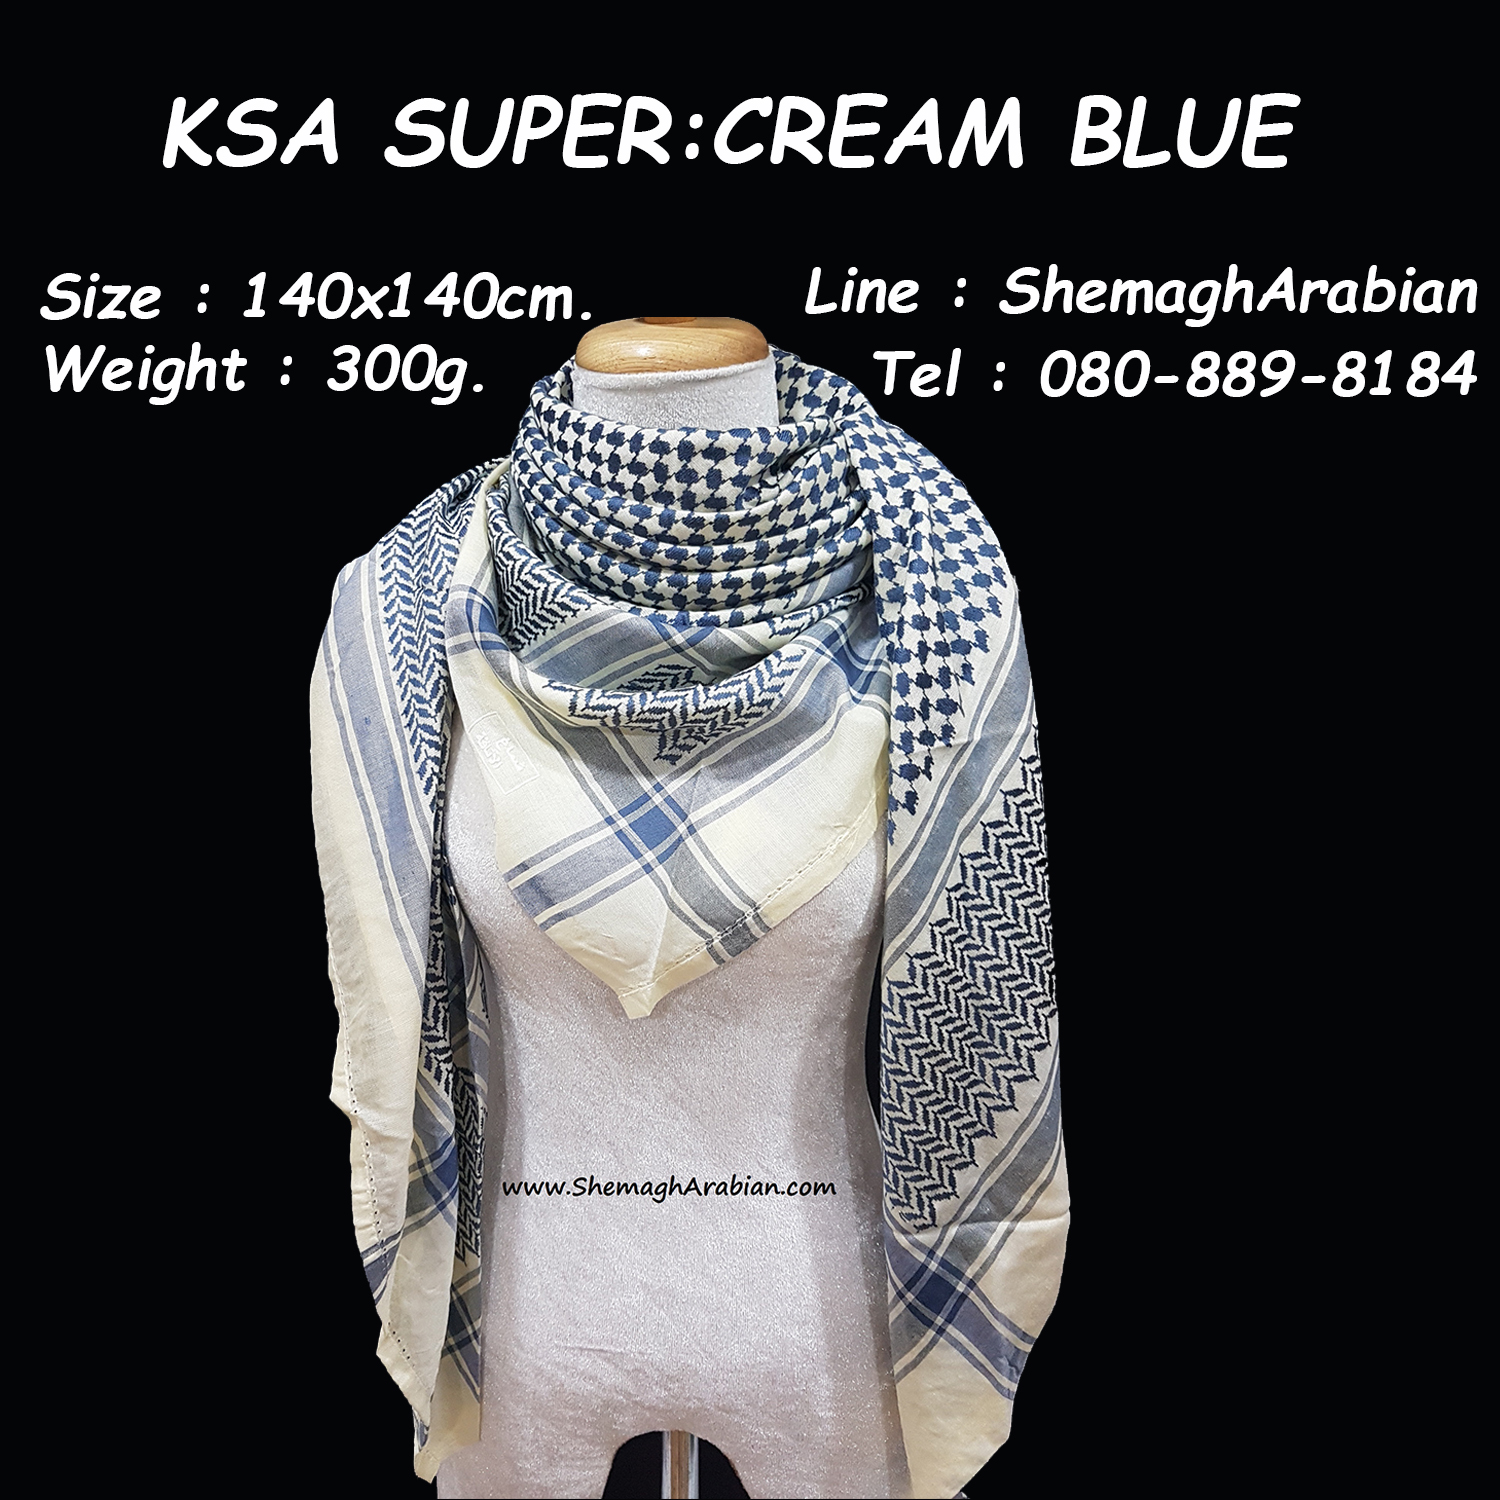 KSA SUPER : CREAM-BLUE